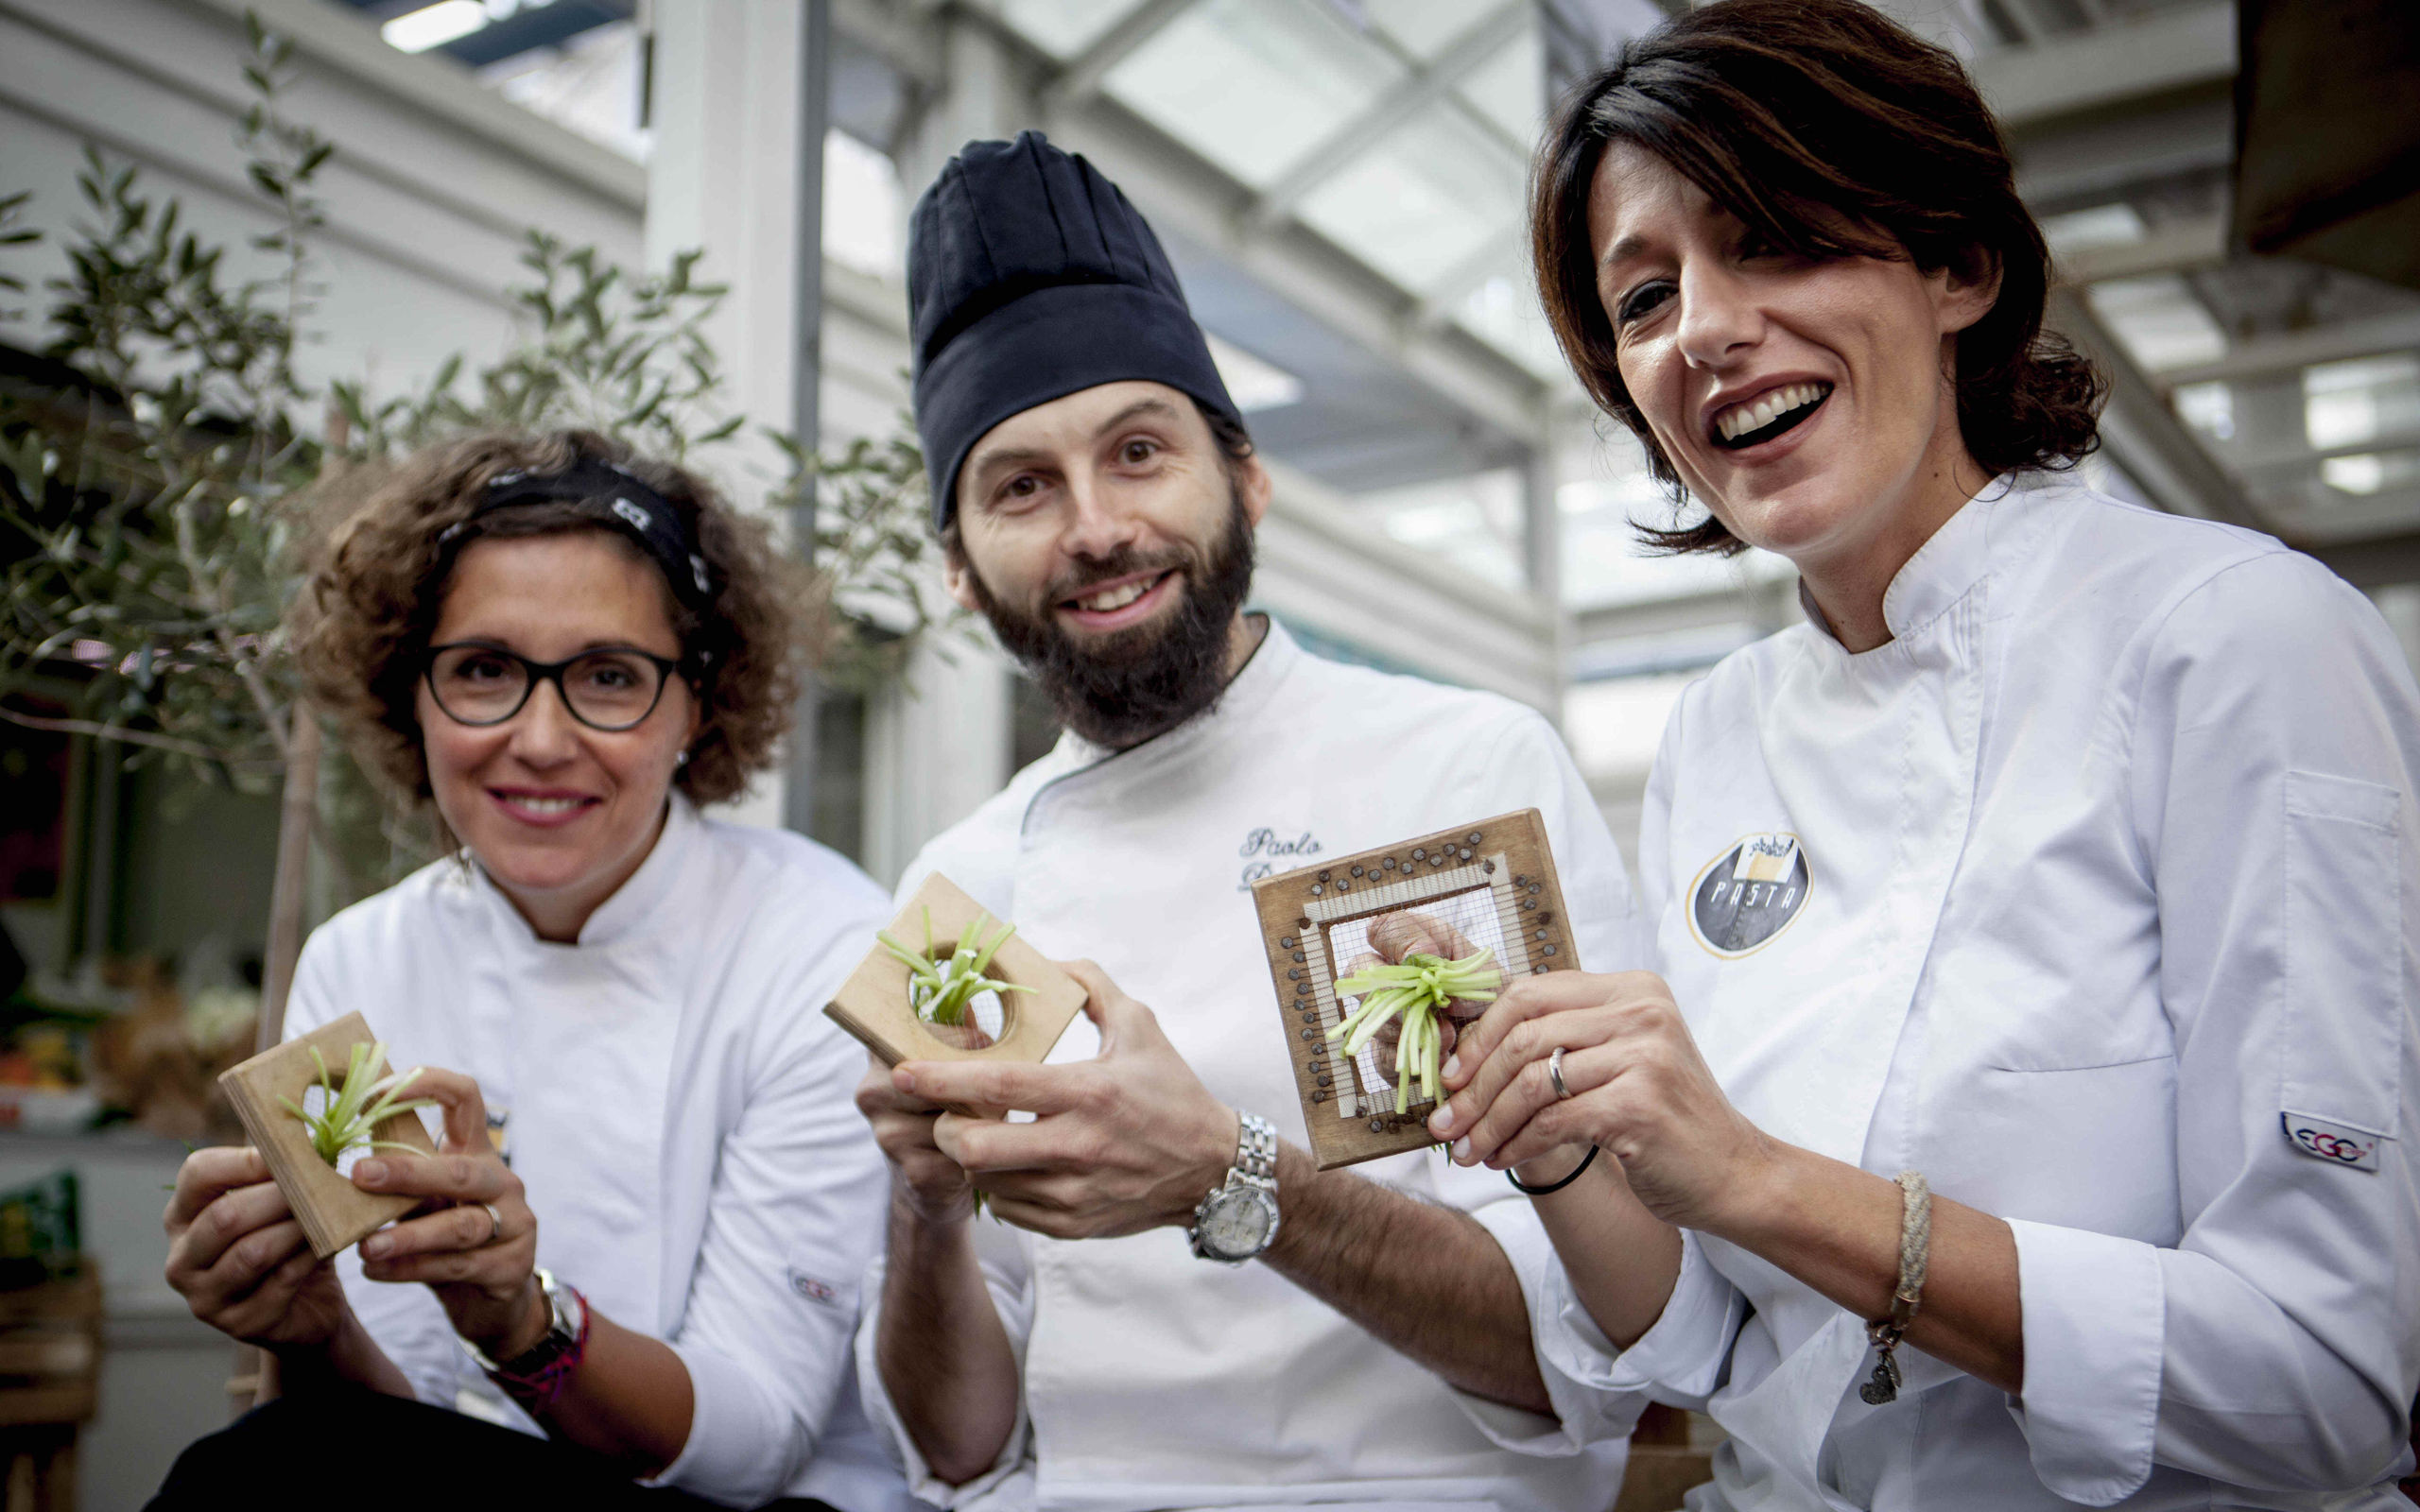 Your chef guides in Testaccio market - ©Raffaella Midiri Photographer